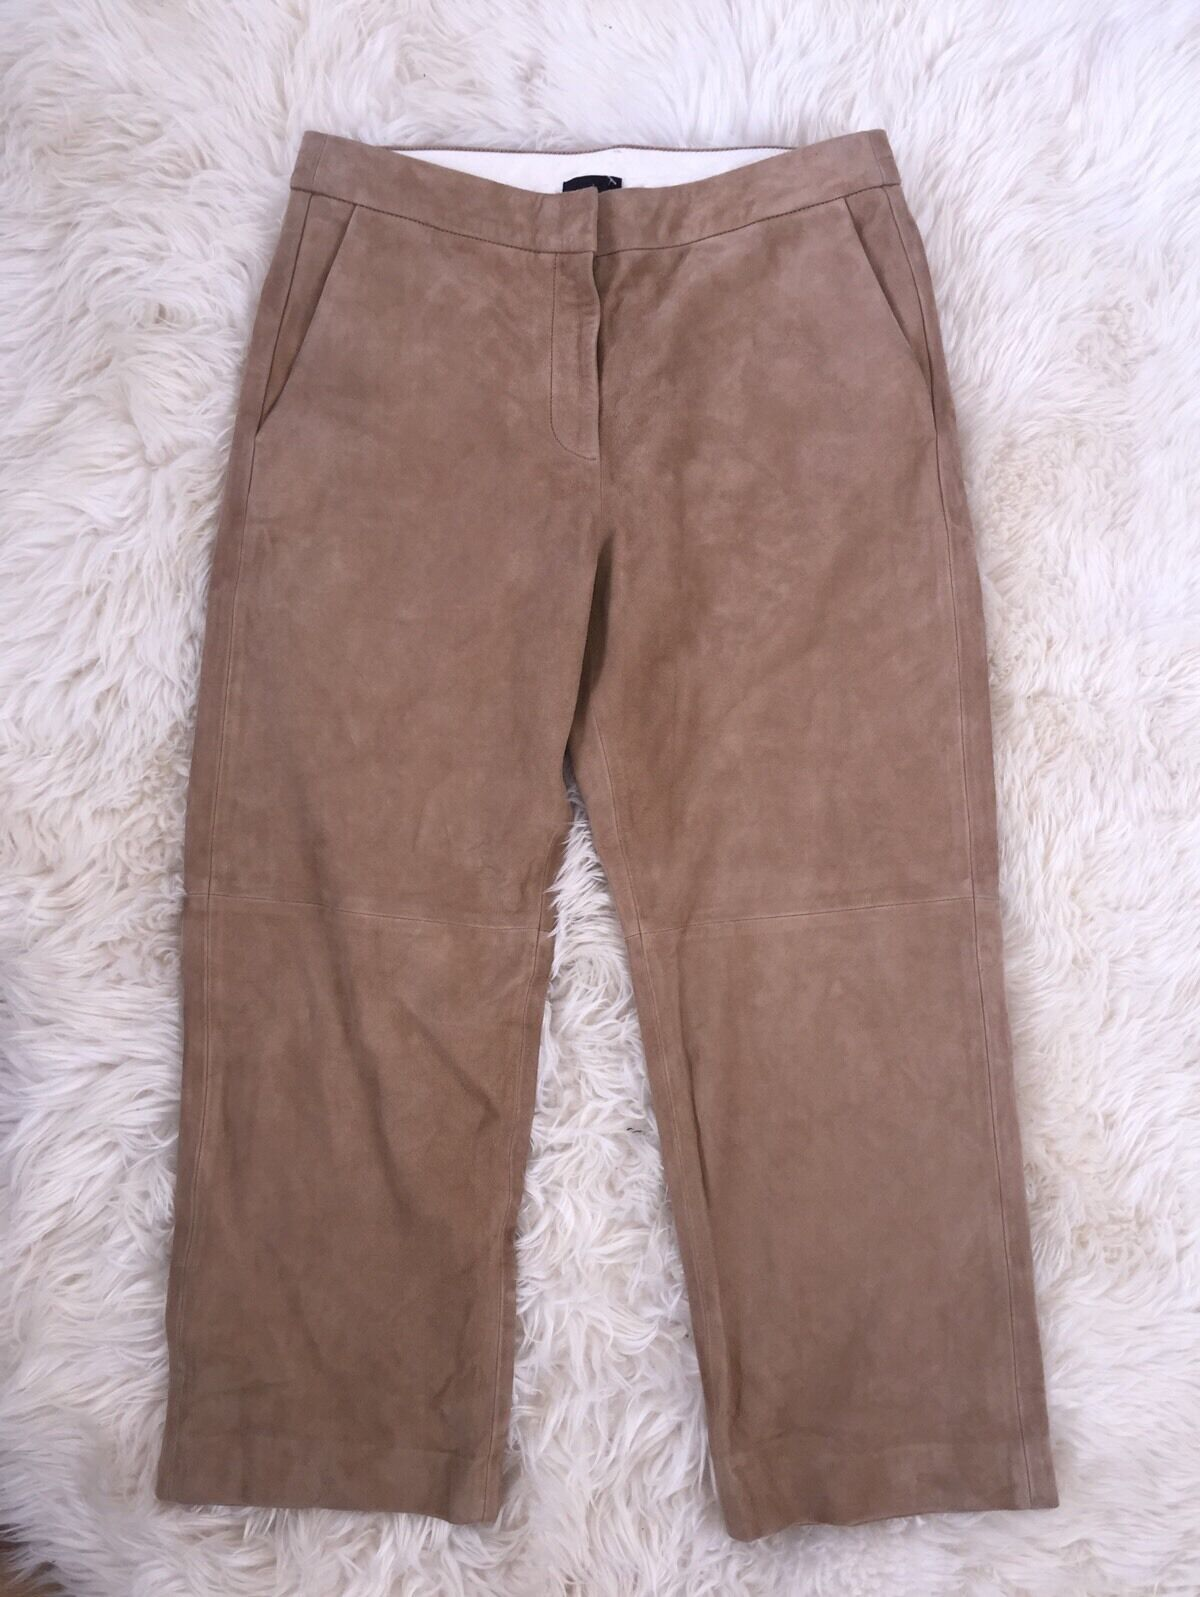 JCrew Collection Suede Patio Pant StyleE4583  495 Camel New Size 10 NEW